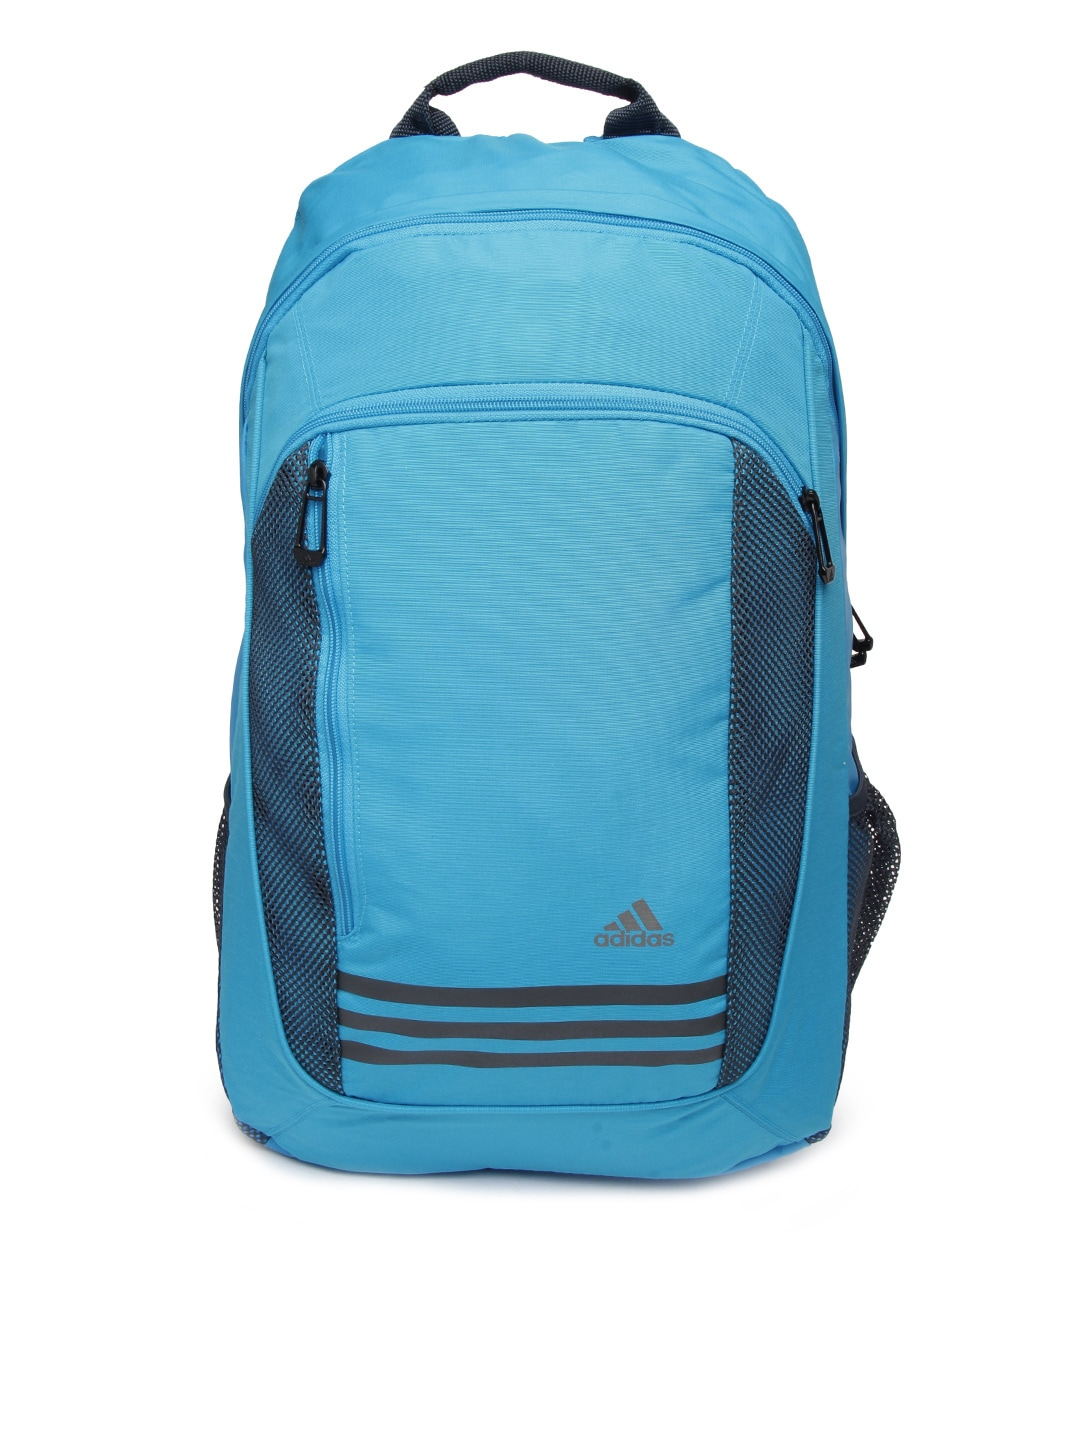 adidas fluorescent backpack on sale   OFF42% Discounts b86b9a72dd